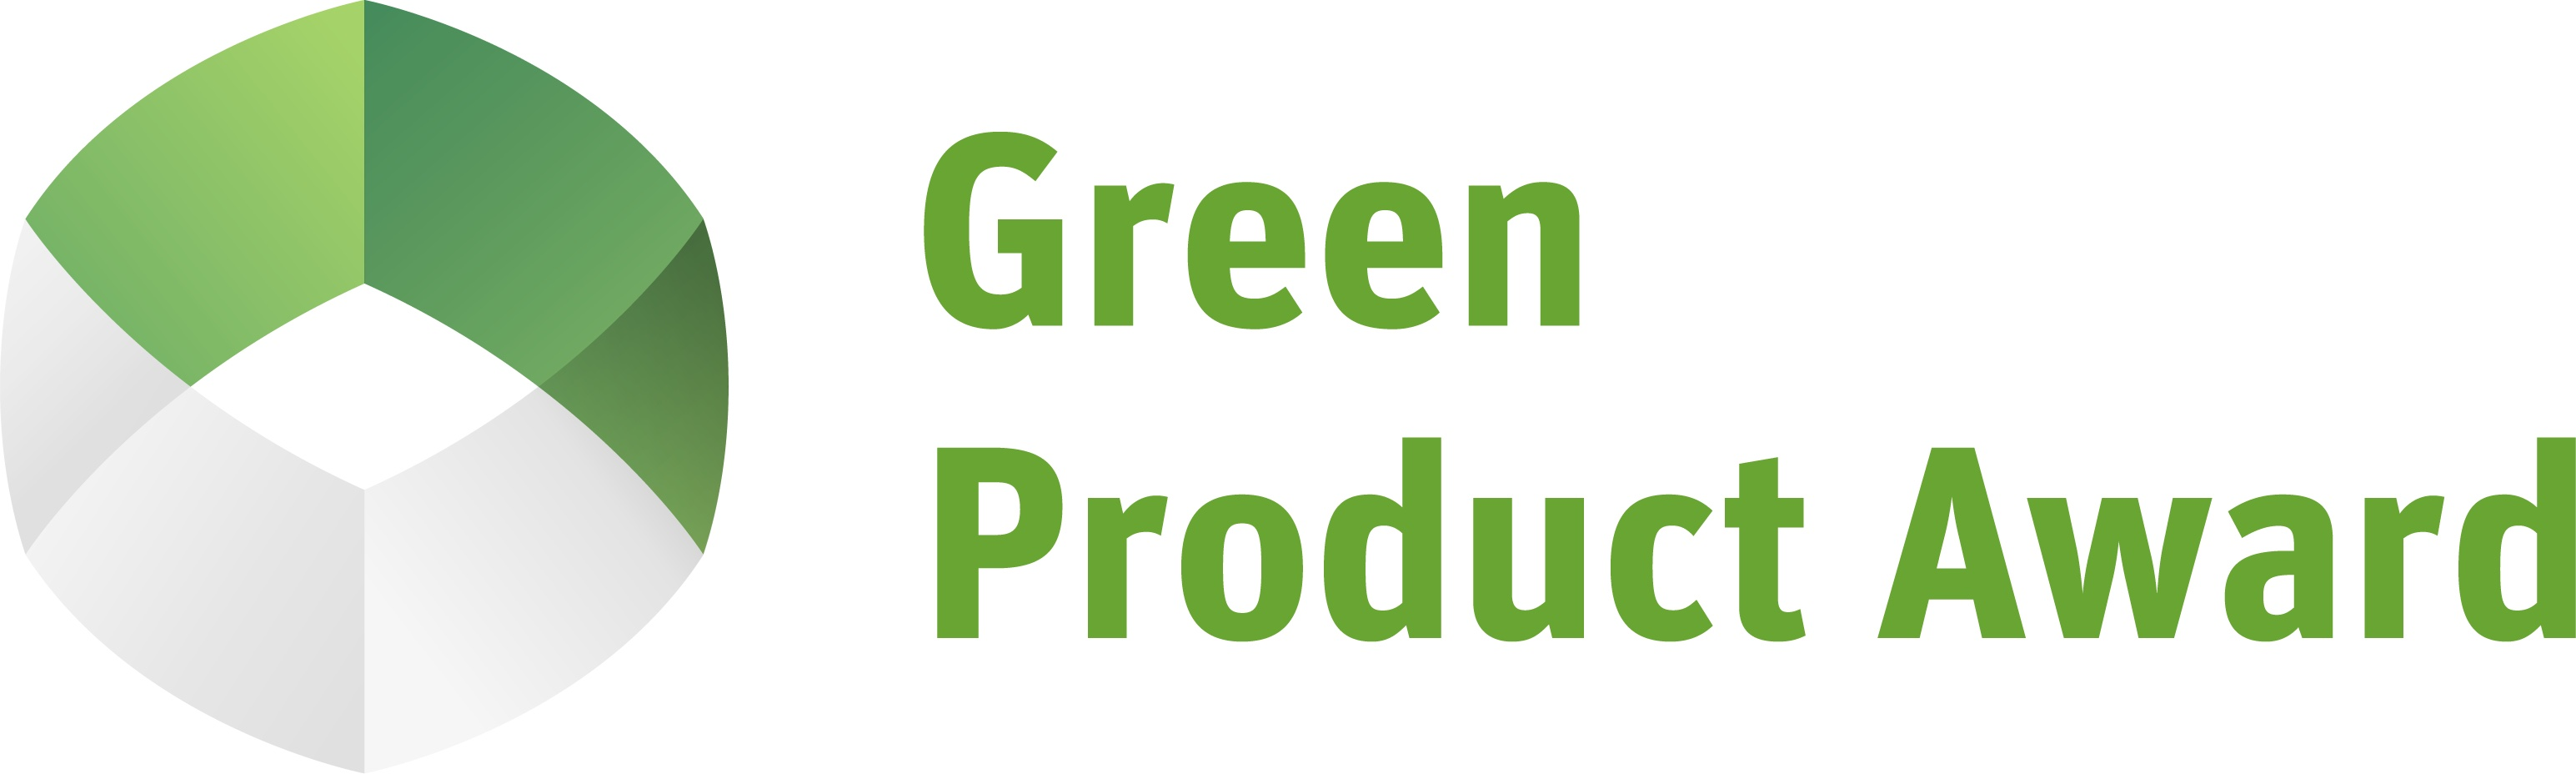 Company logo of Green Product Award